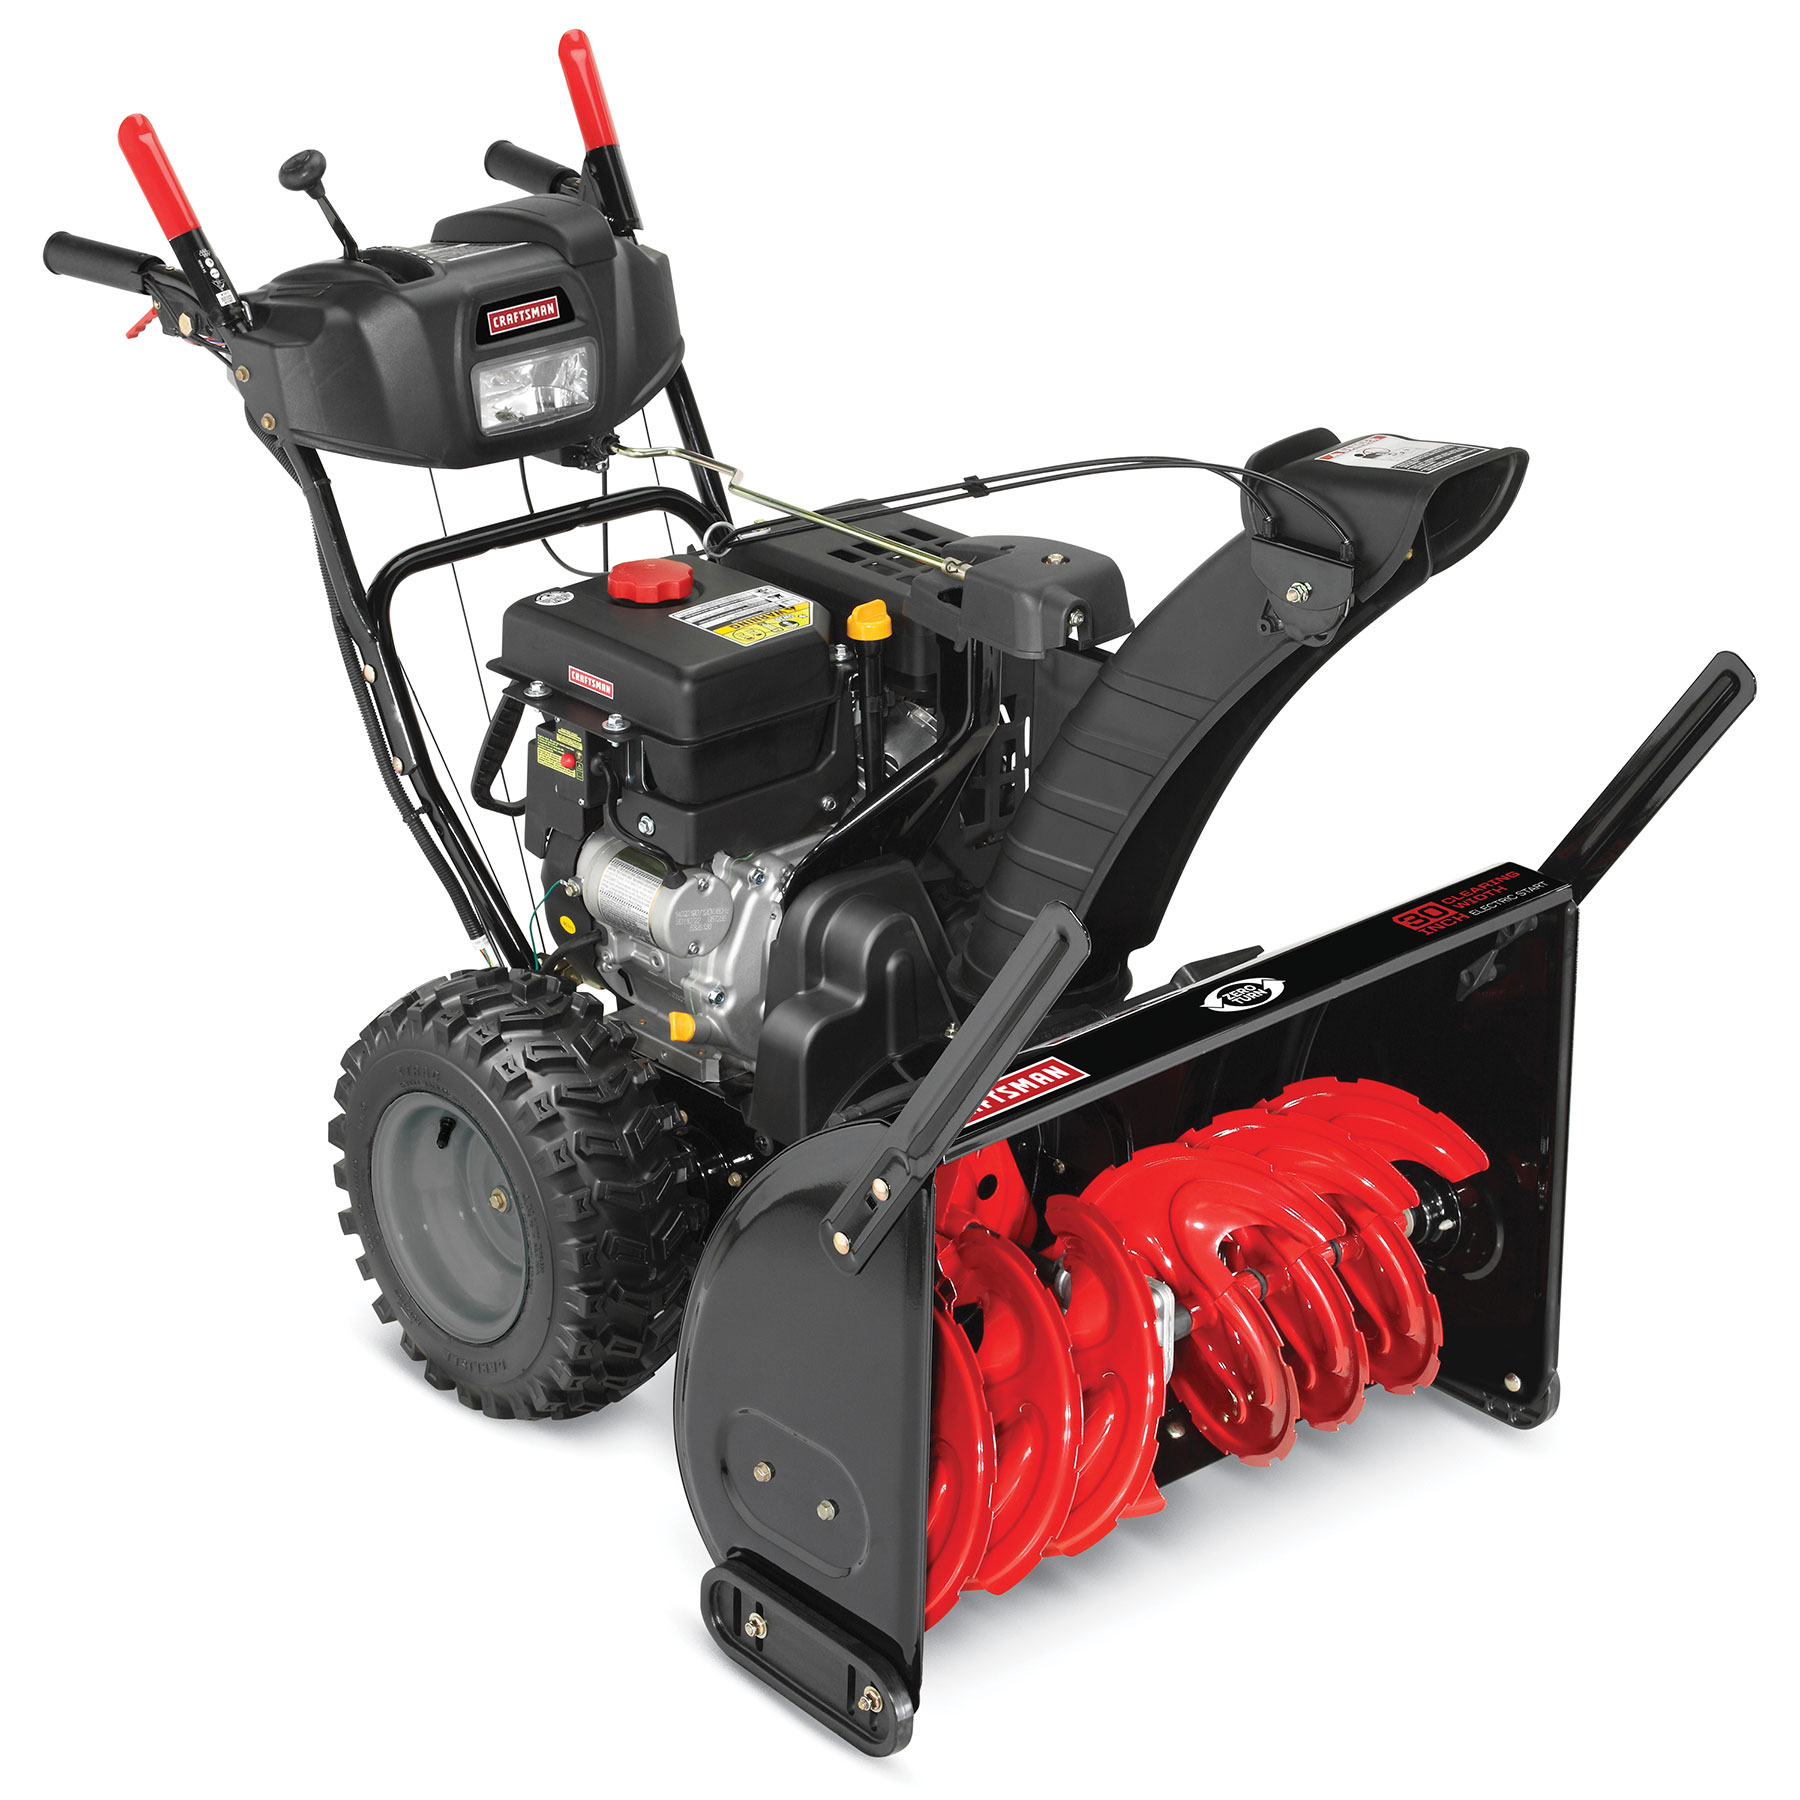 small resolution of for snow blower wiring diagram basic electronics wiring diagram wildcat snowblower parts diagram wiring